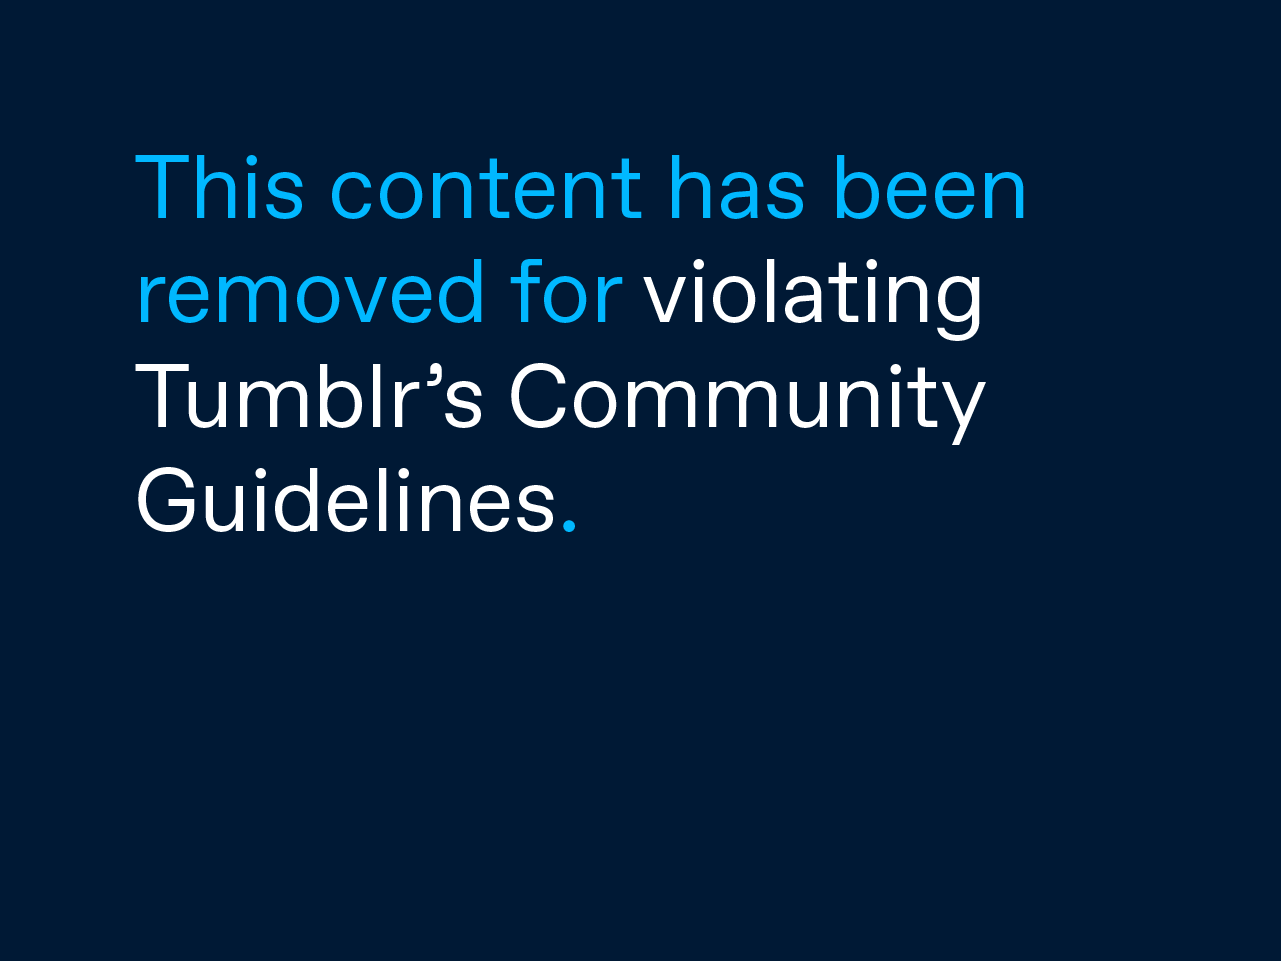 Personal Security Jobs Near Me